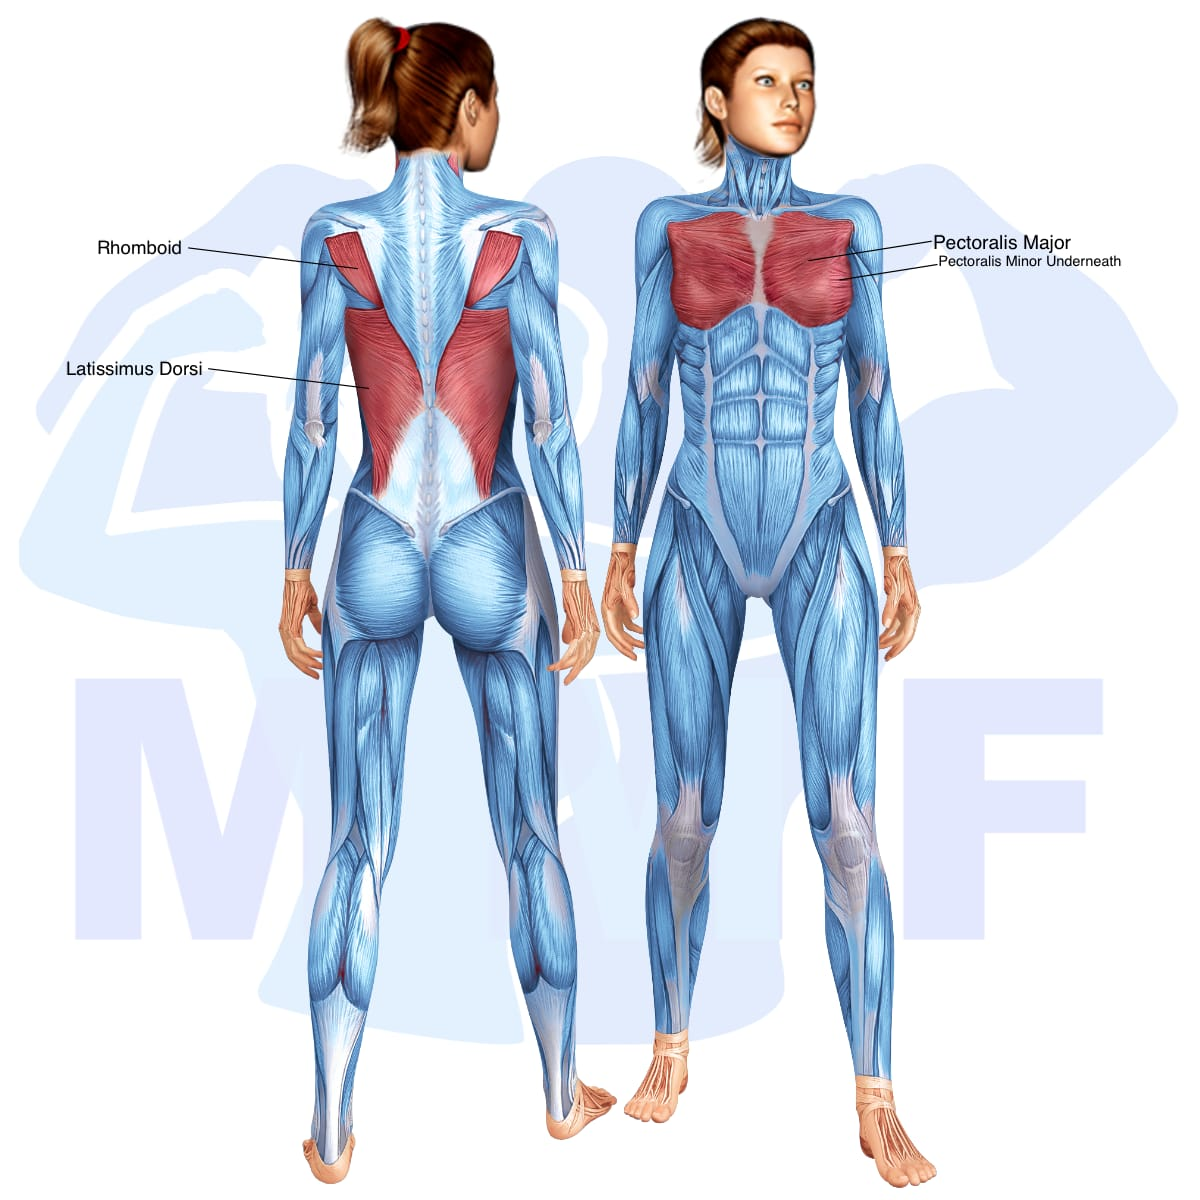 Skeletal muscle systems for a muscular woman, with muscles highlighted in red that are use during resistance band high chest flys.